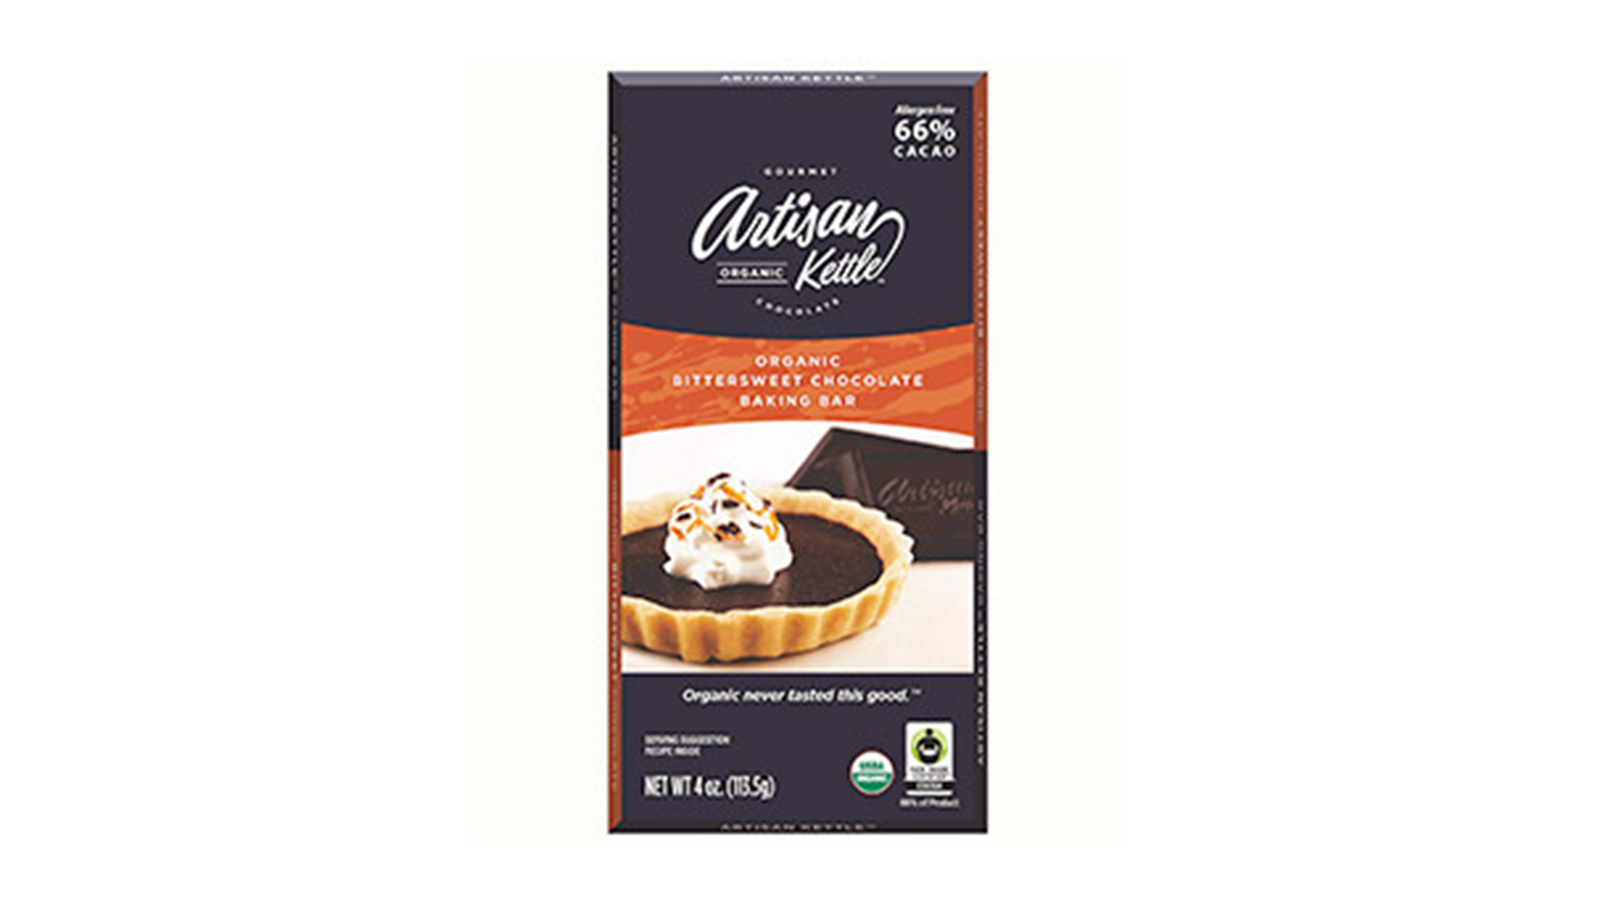 Artisan Kettle Organic Bittersweet Chocolate Baking Bar